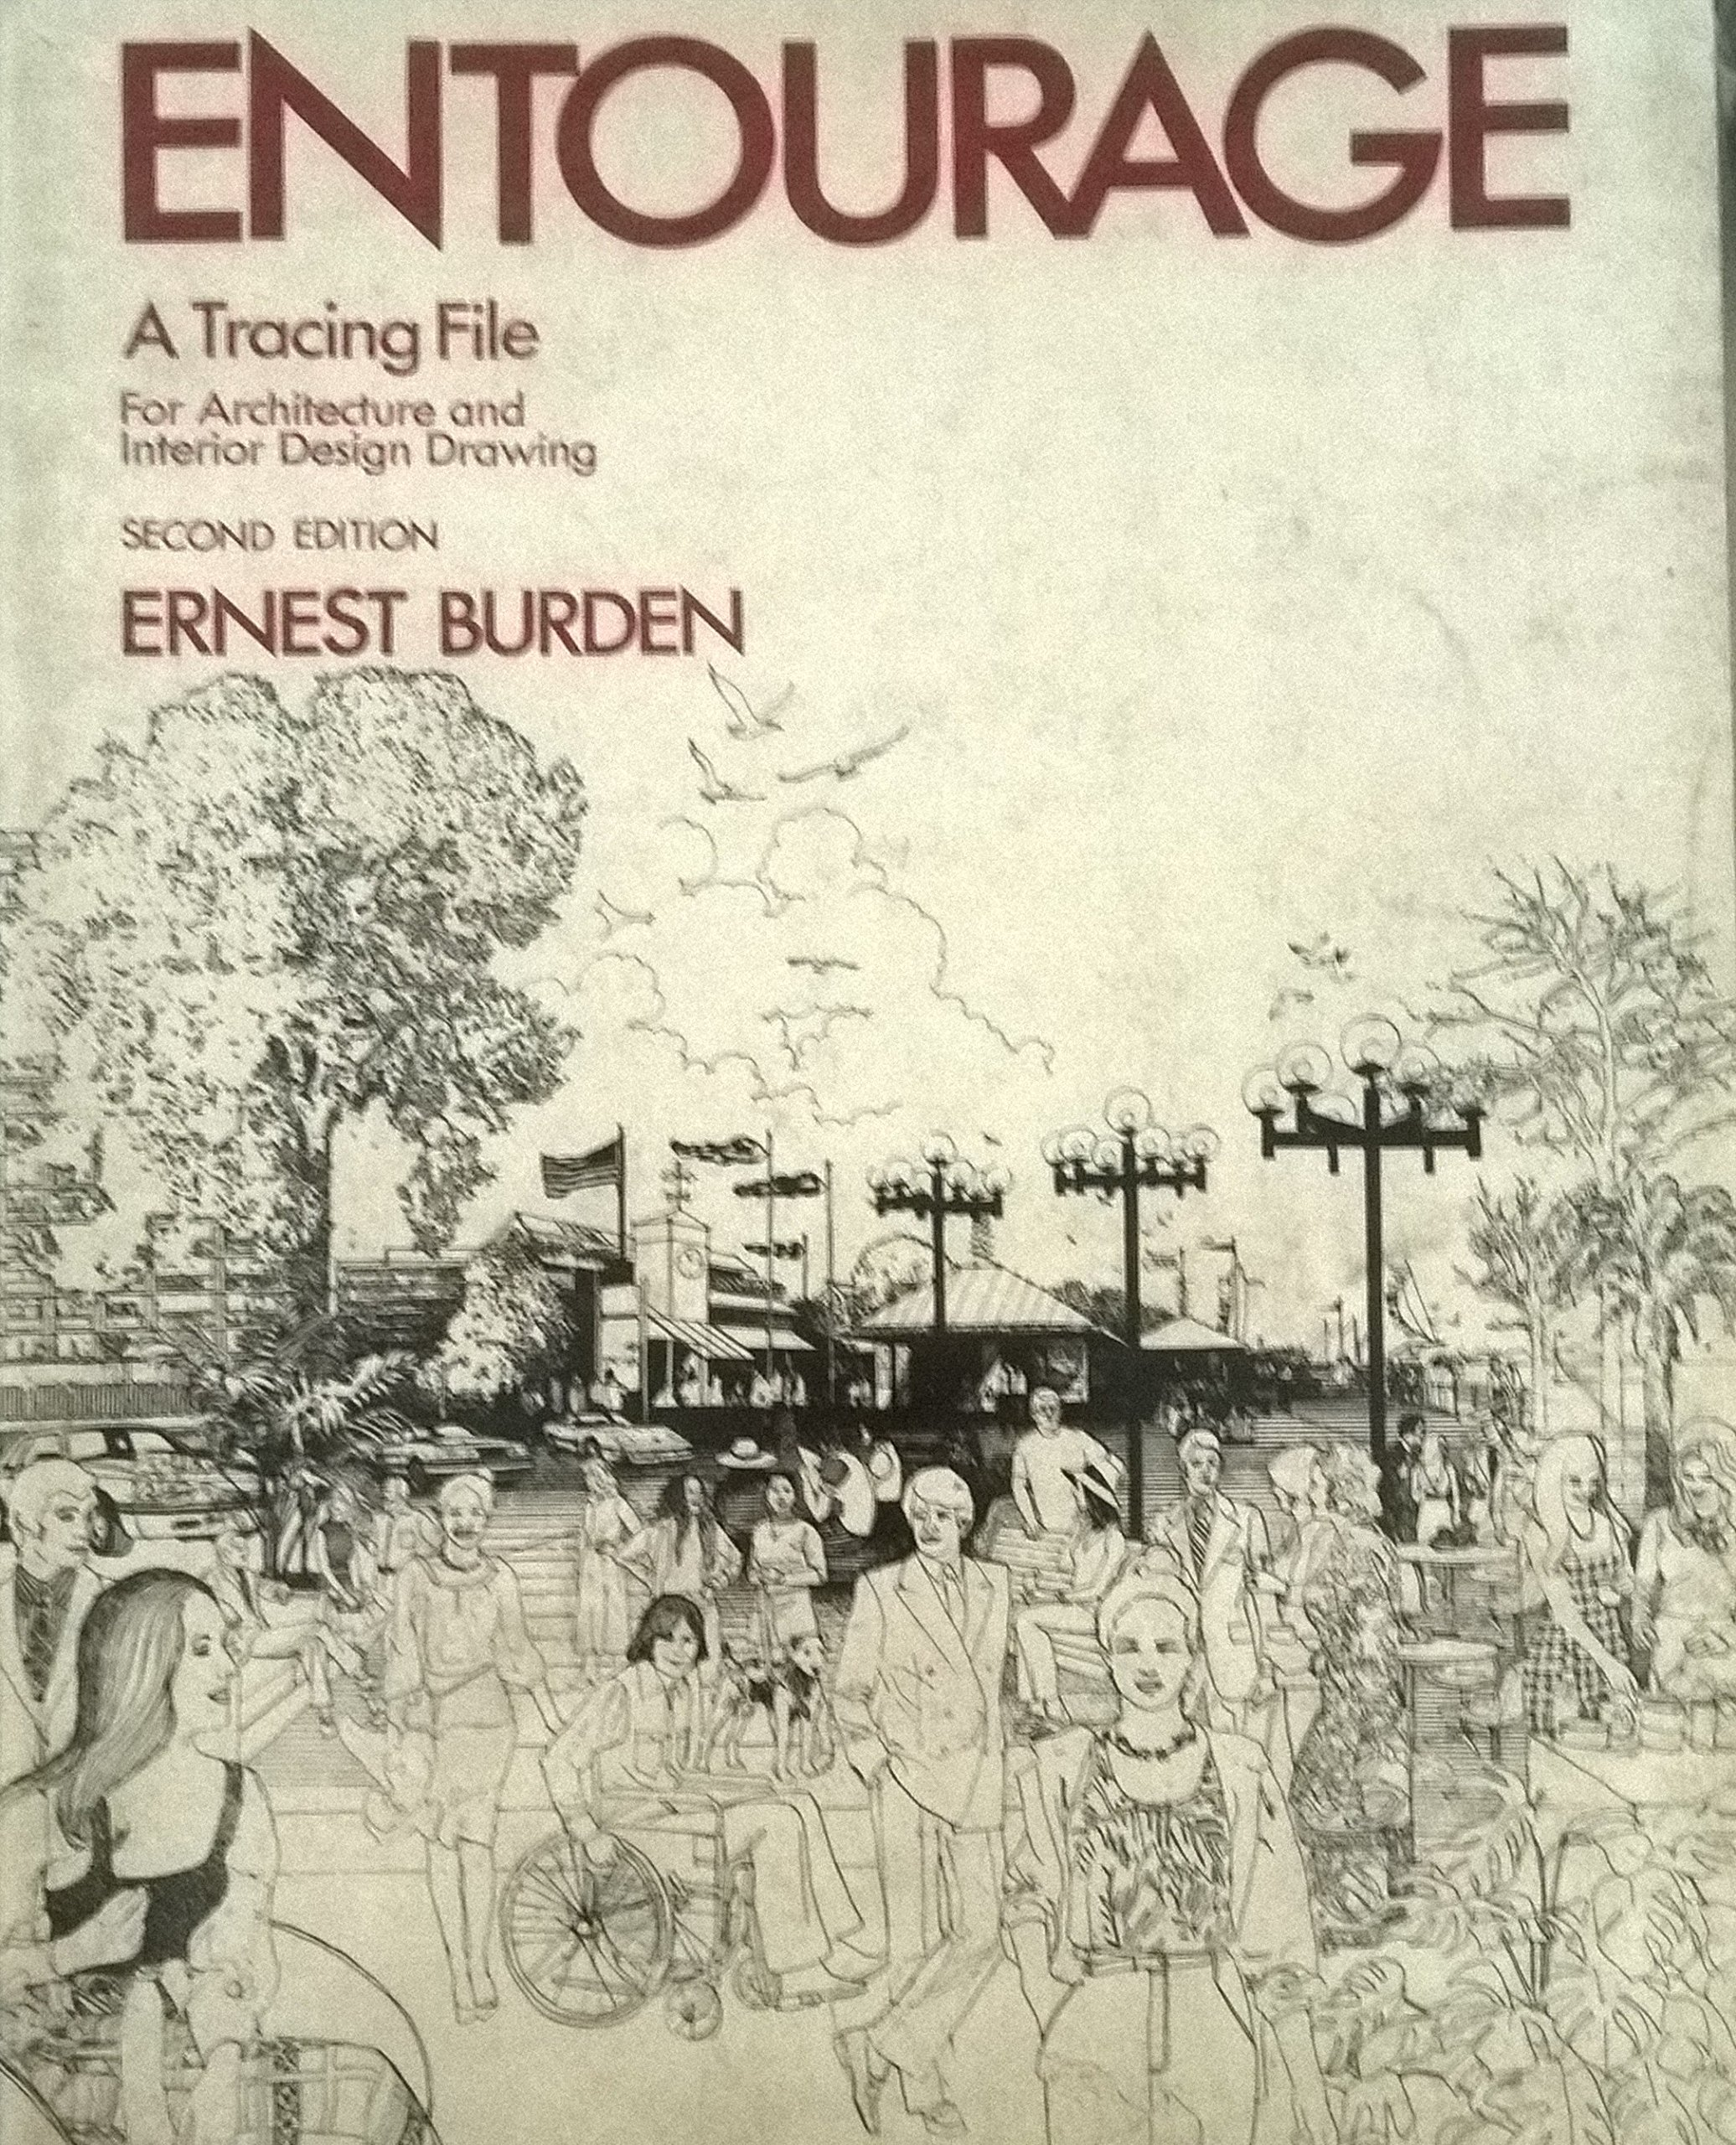 Entourage A Tracing File For Architecture And Interior Design Drawing Ernest Burden 9780070089334 Amazon Books